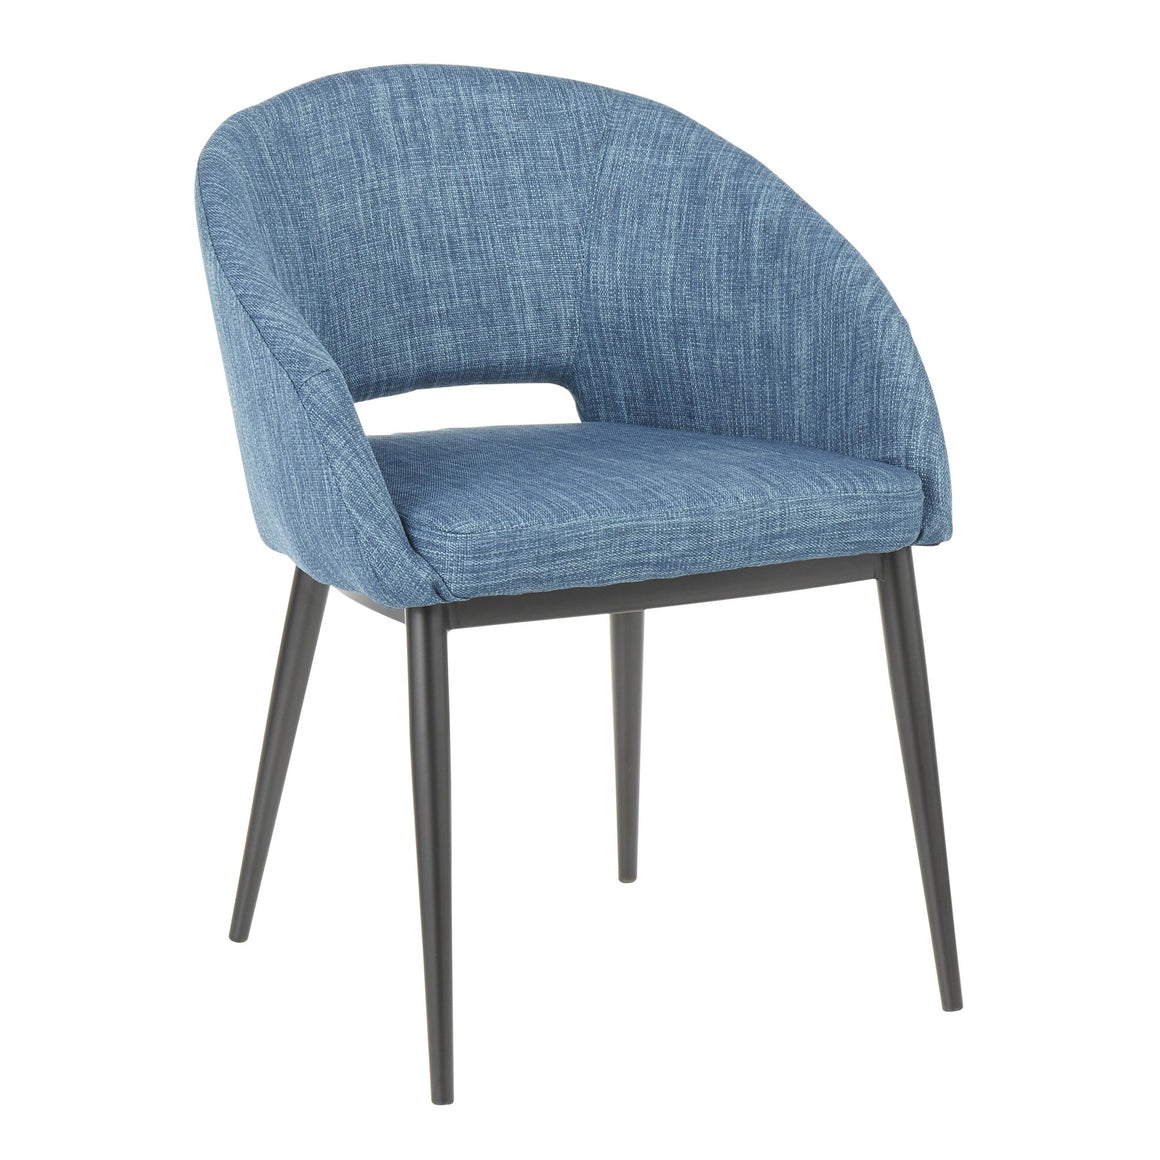 Renee Contemporary Chair in Black Metal Legs and Blue Fabric by LumiSource